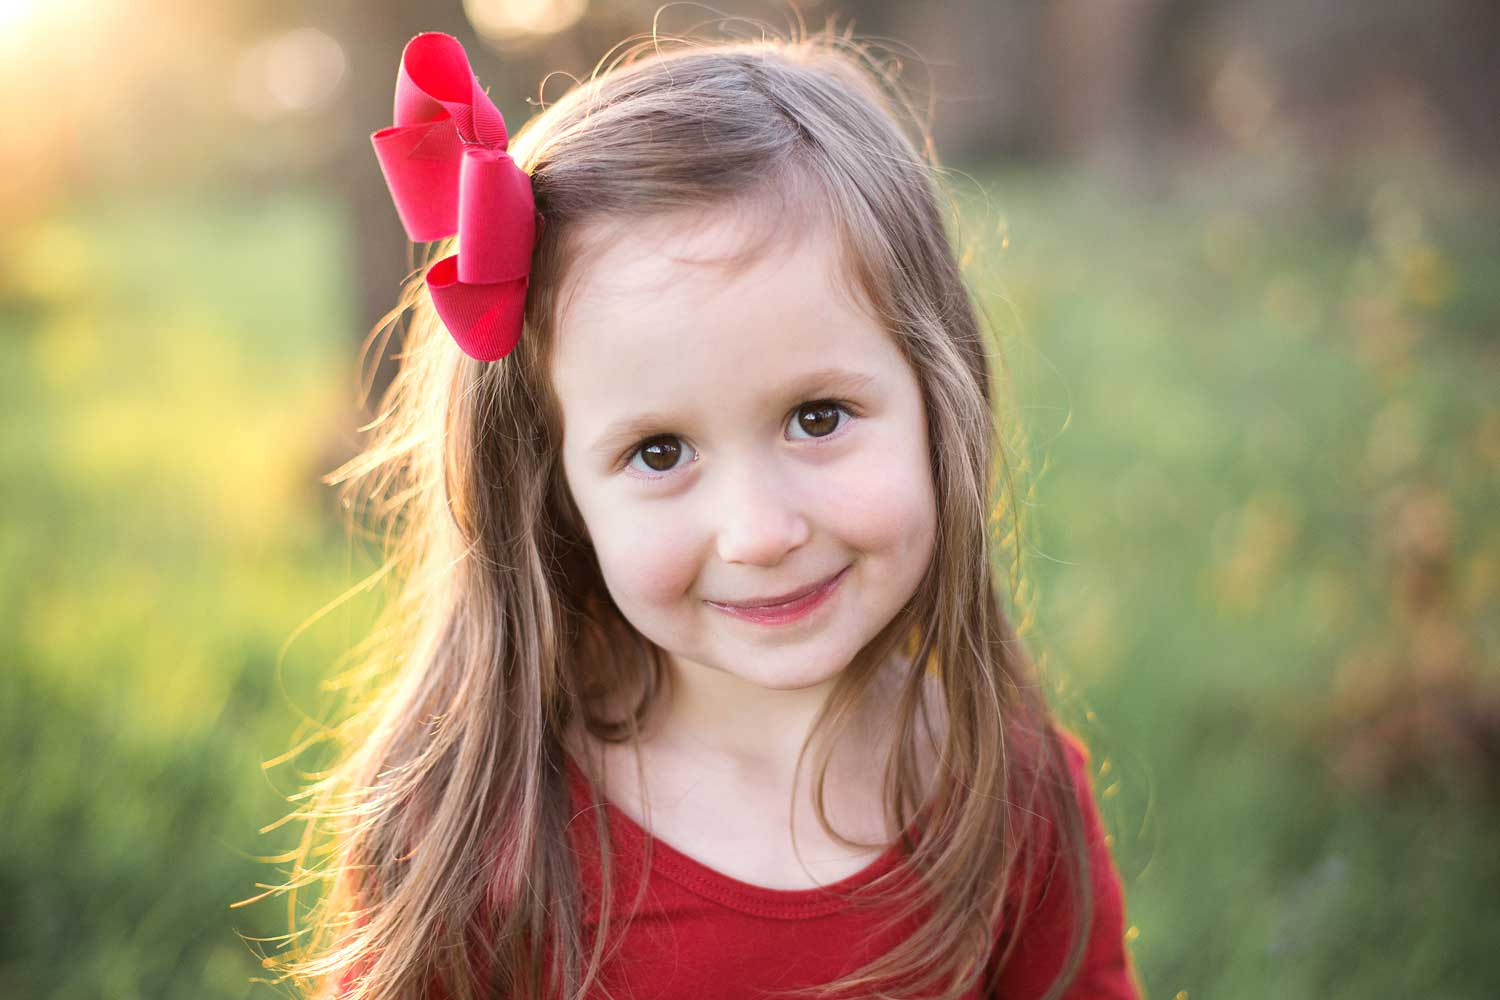 A girl sweetly smiles for the camera during a photo session in Roseville, California.